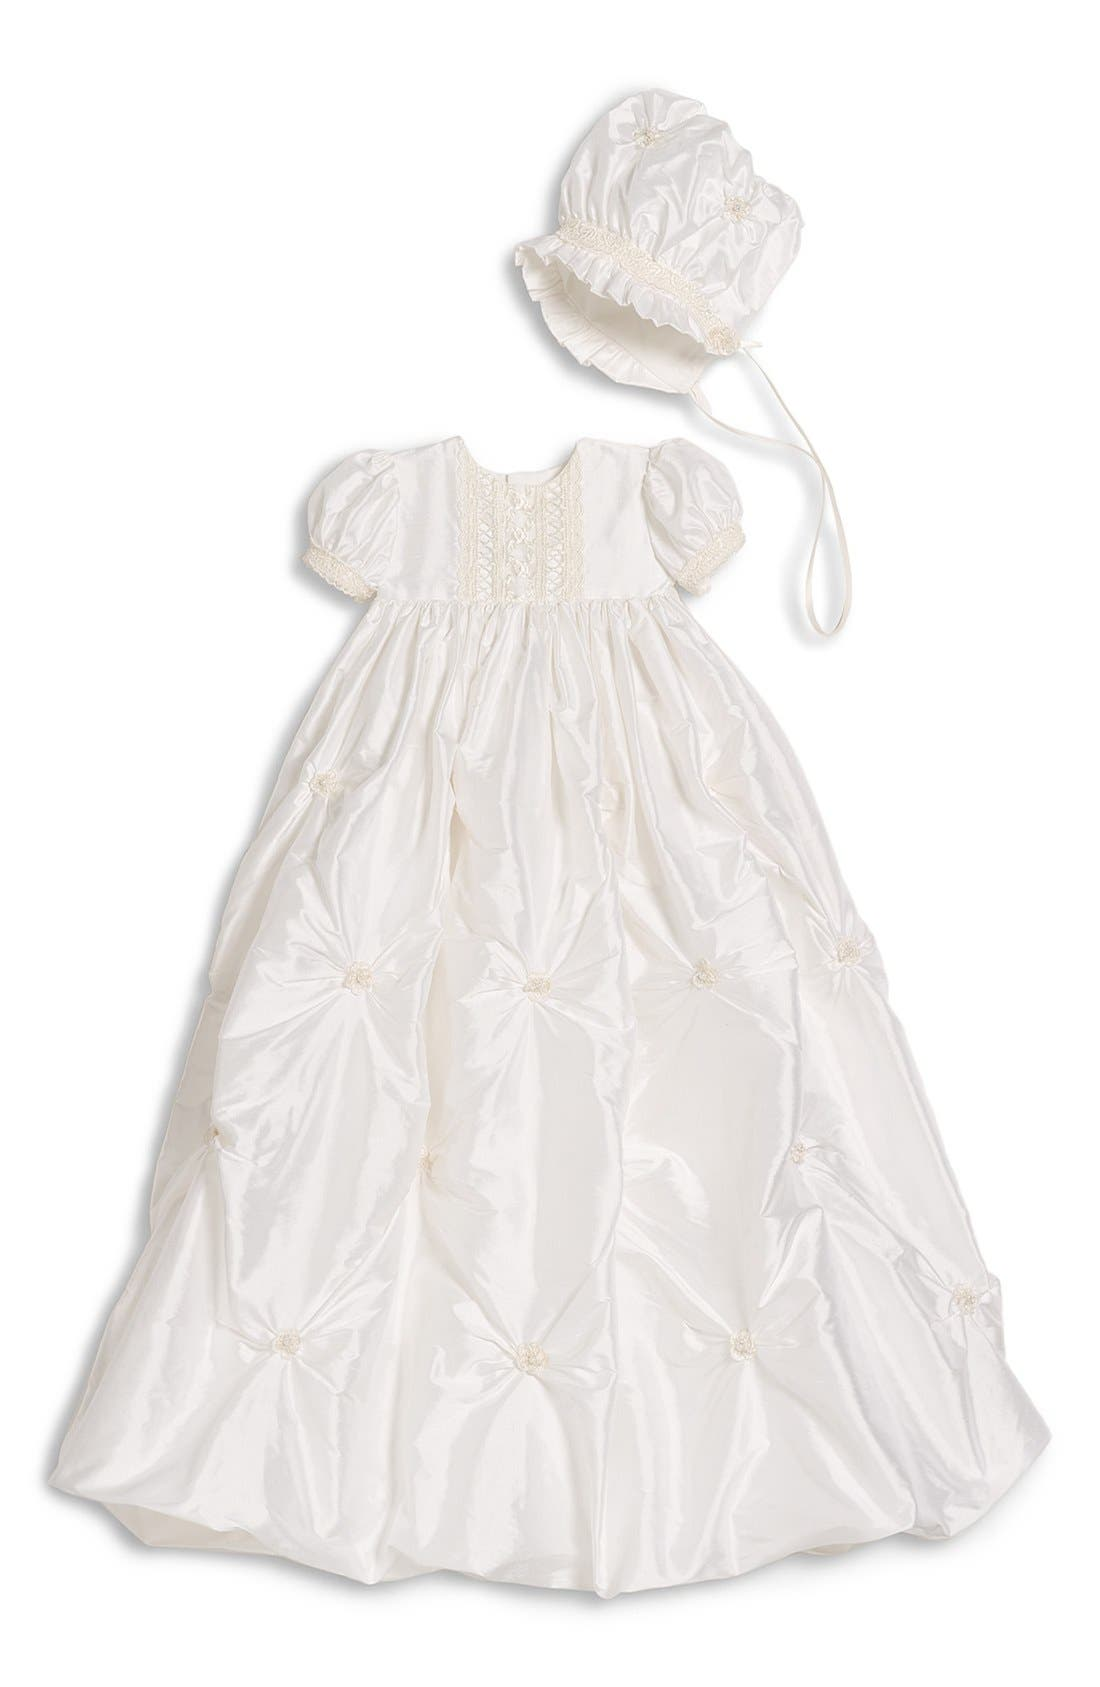 Main Image - Little Things Mean a Lot Princess Gown (Baby)